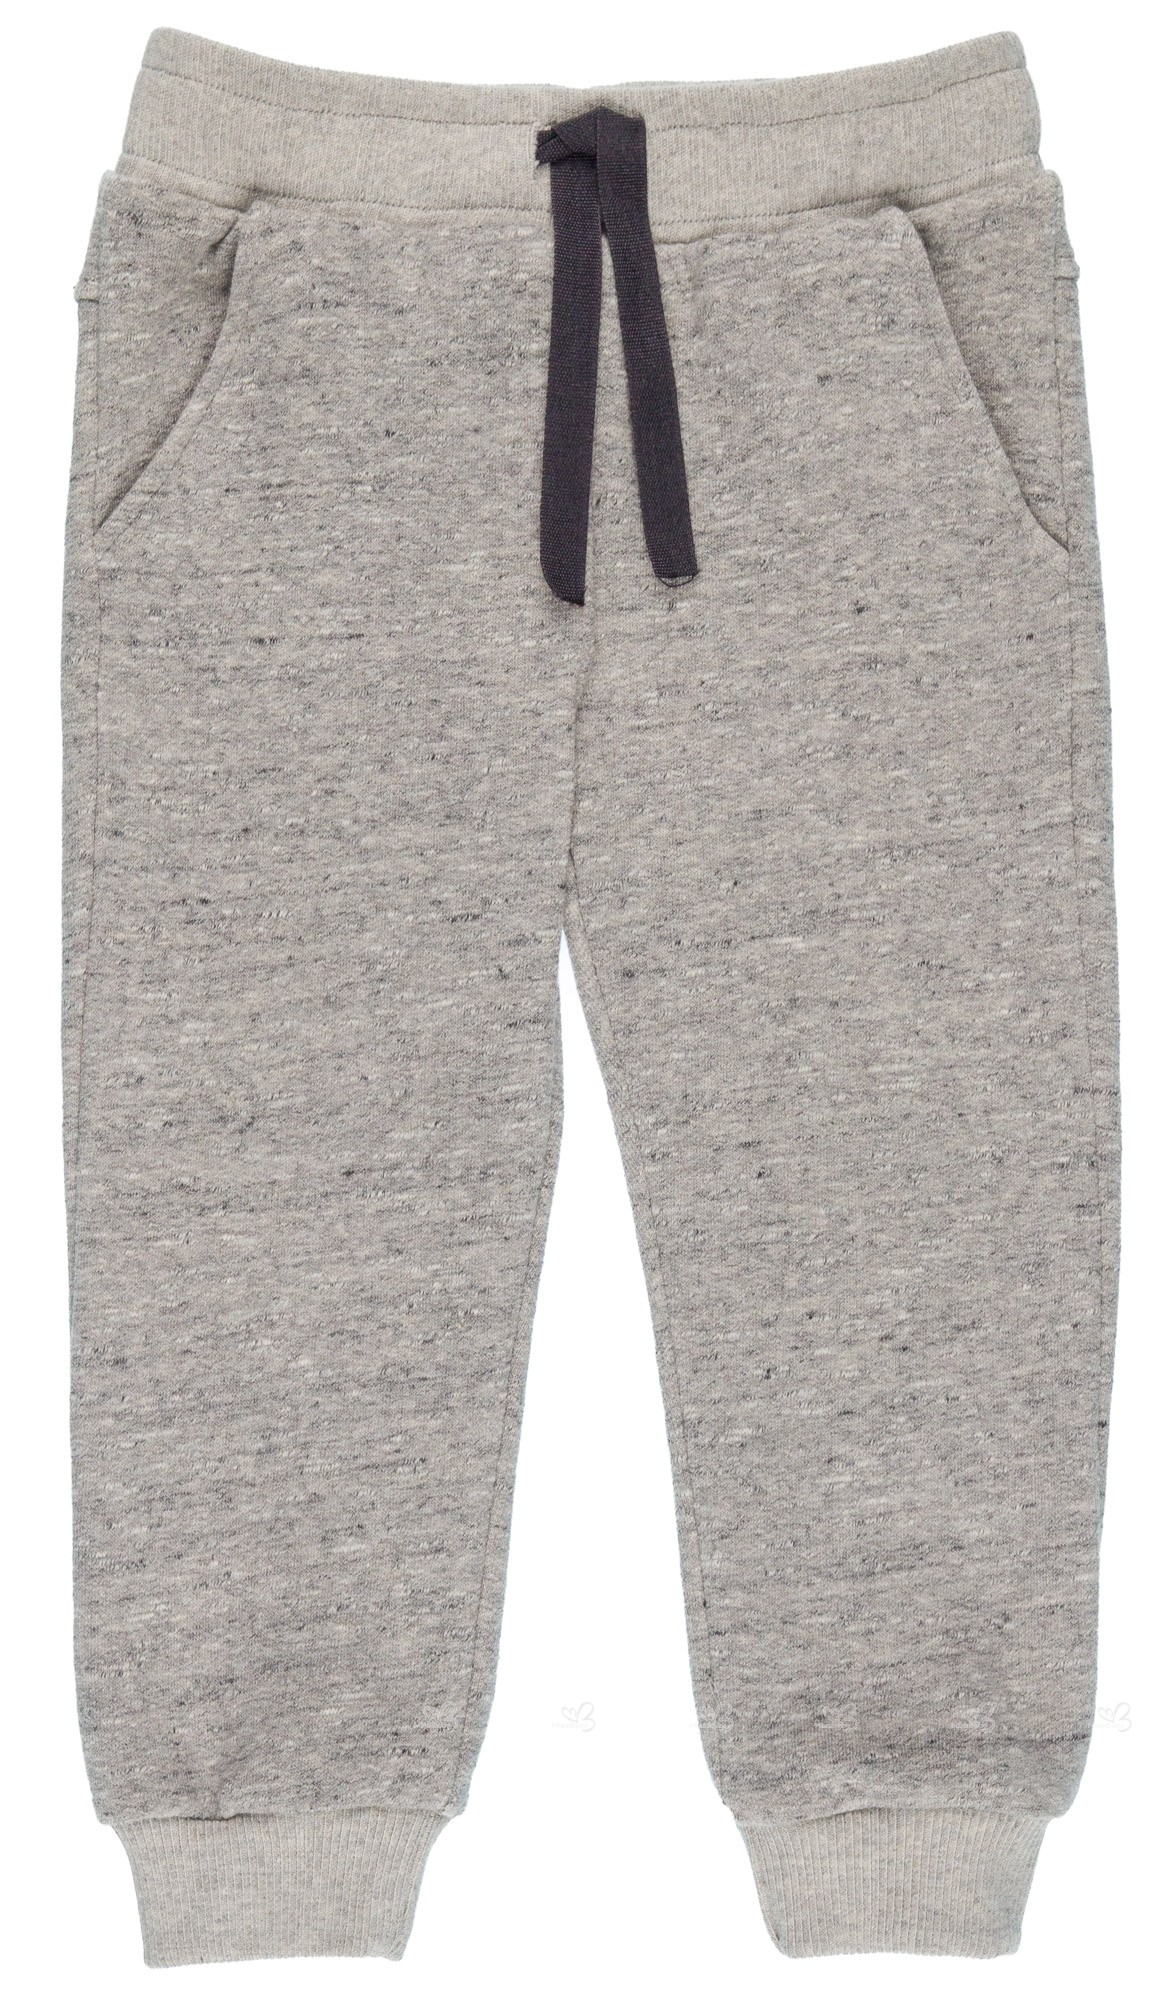 3d70bb1a9 Home; Boys Grey Organic Cotton Joggers. PLAY UP Pantalón Niño Algodón  Orgánico Gris Melange ...